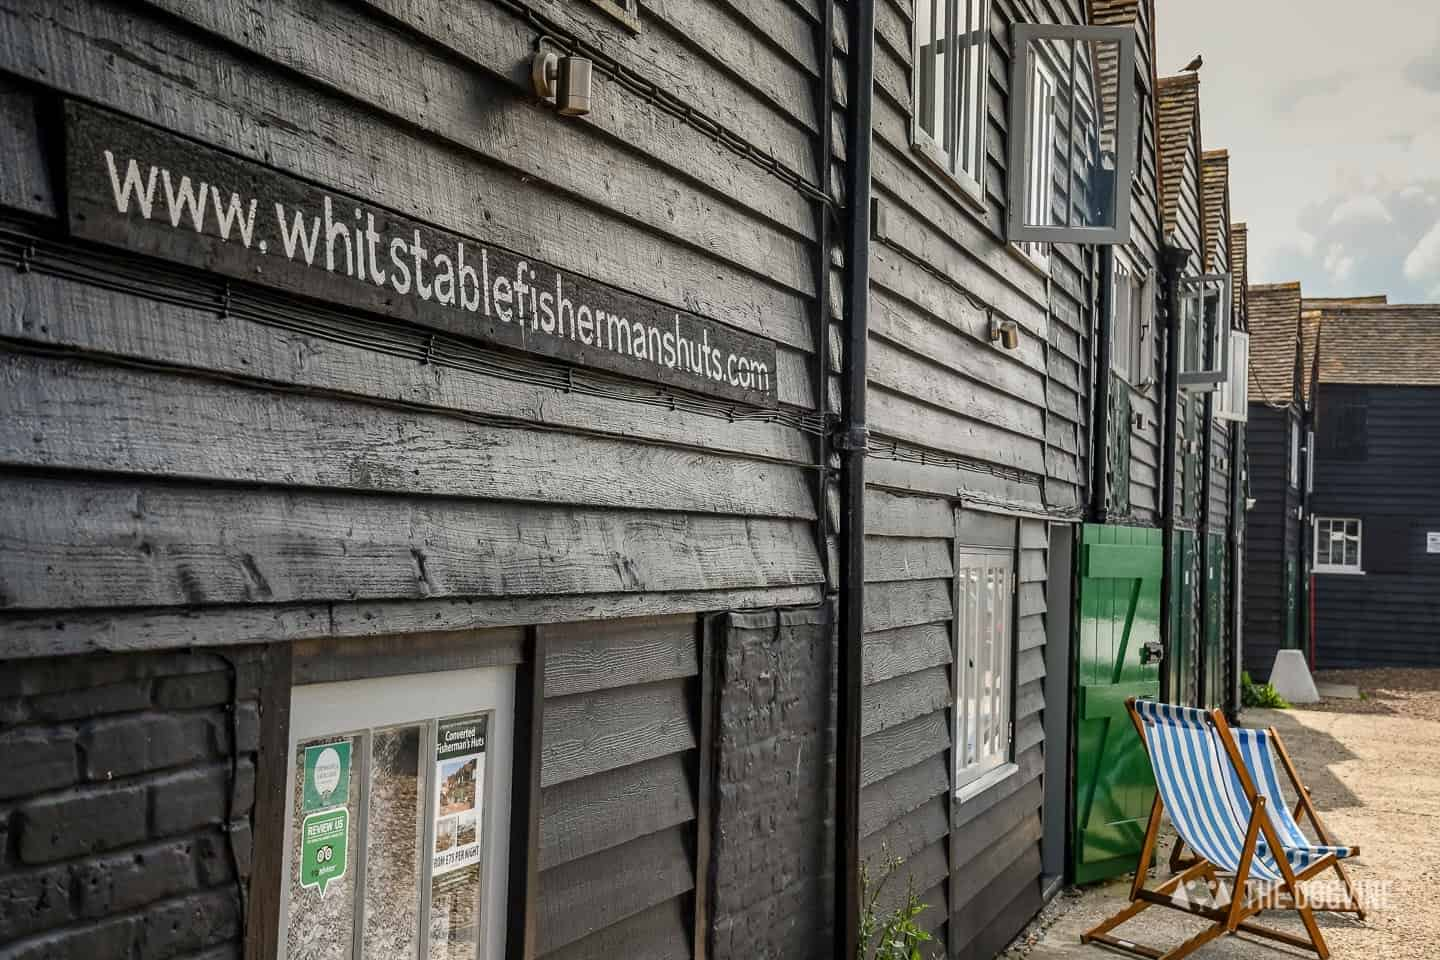 Dogs Day Out With Fetch & Follow On Tour In Dog-Friendly Whitstable 7